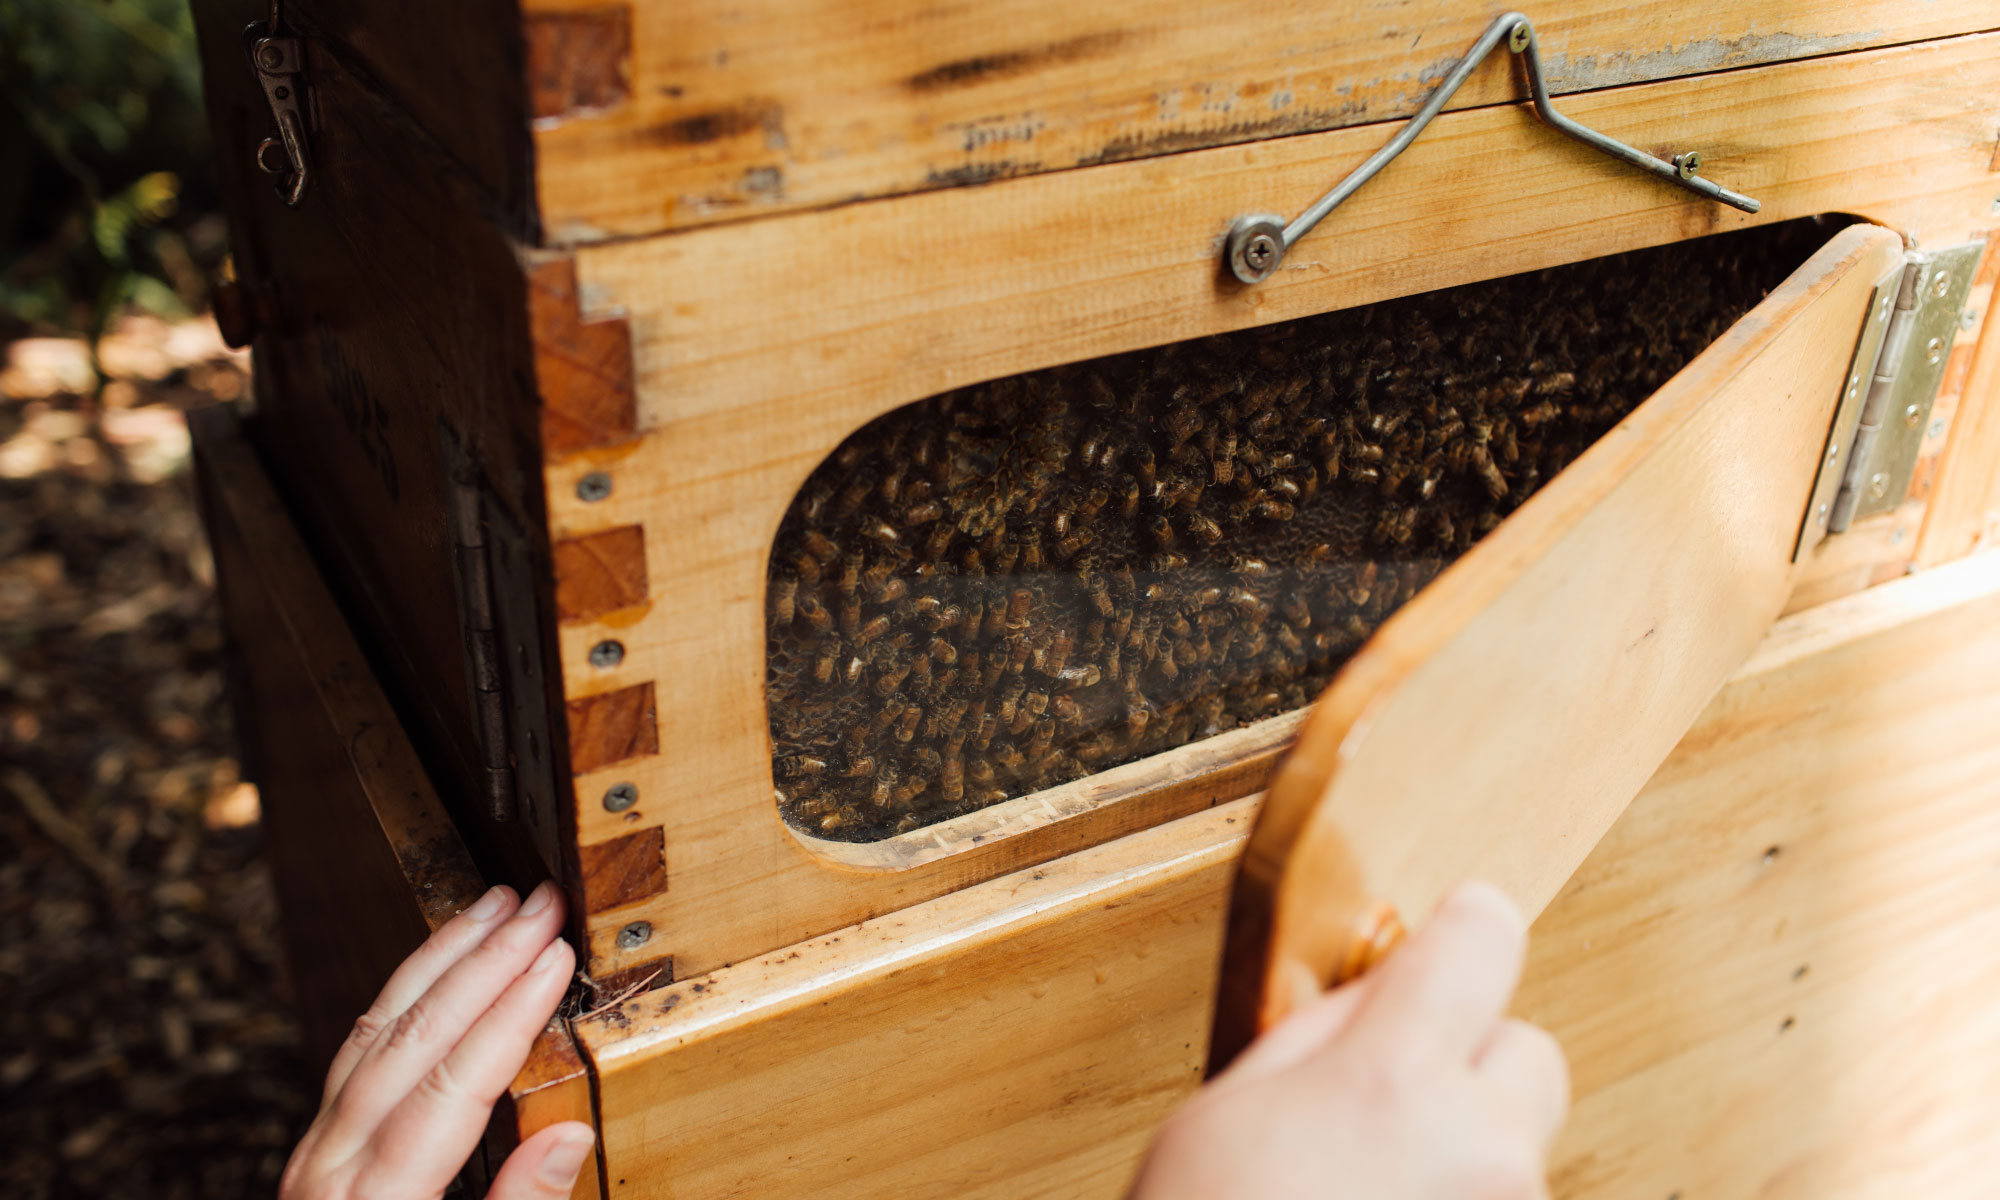 One of two photos: This one shows Scarlett Howard opening a side panel of a chimney hive housing honeybees